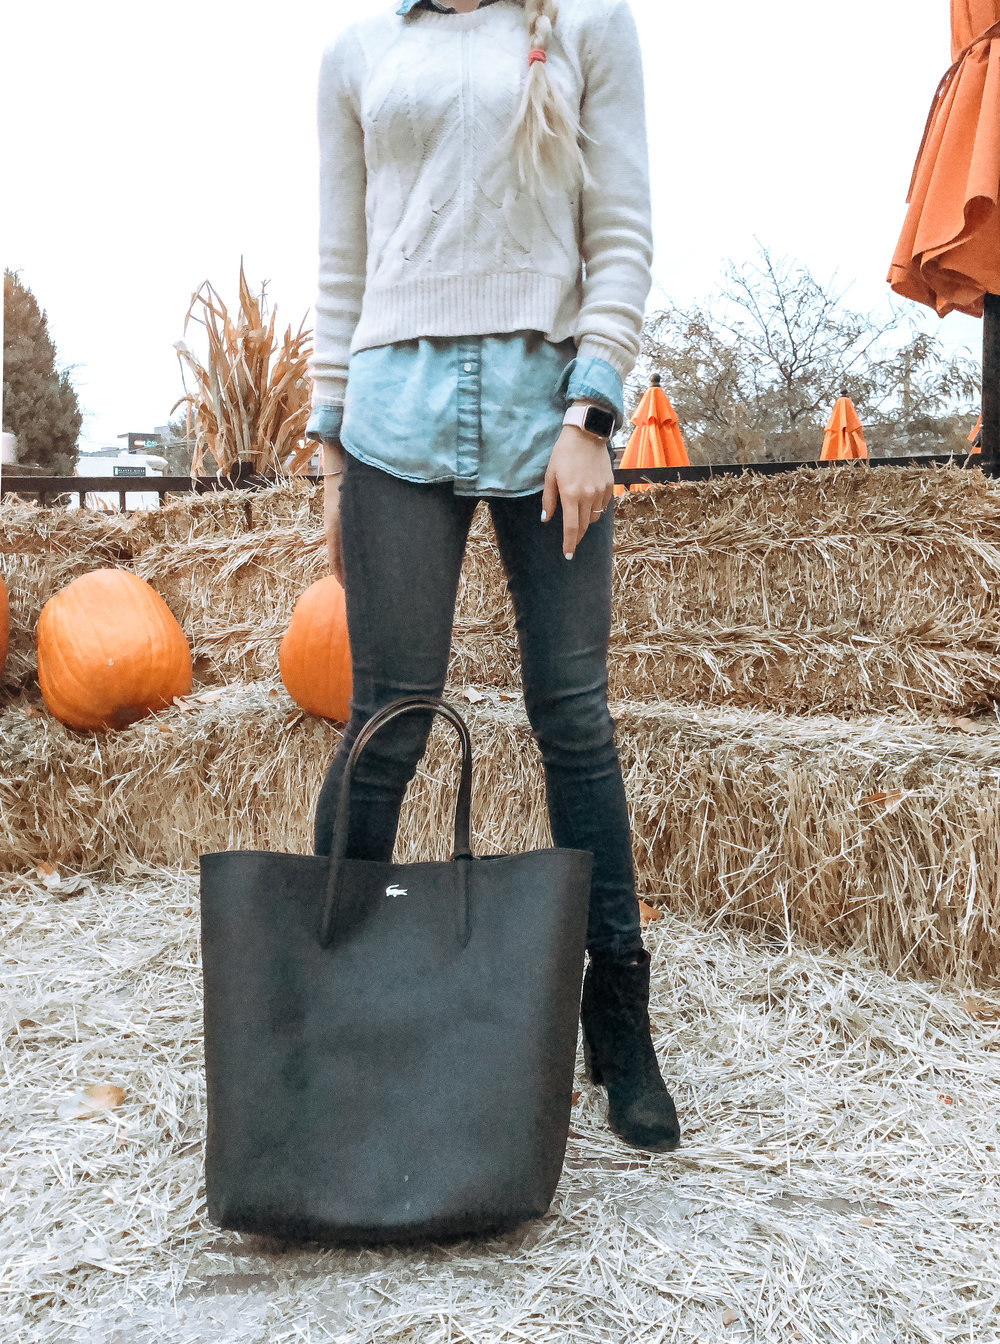 outfit details:  chambray blouse  | cropped sweater ( similar ) |  jeans  |  tote bag  |  booties